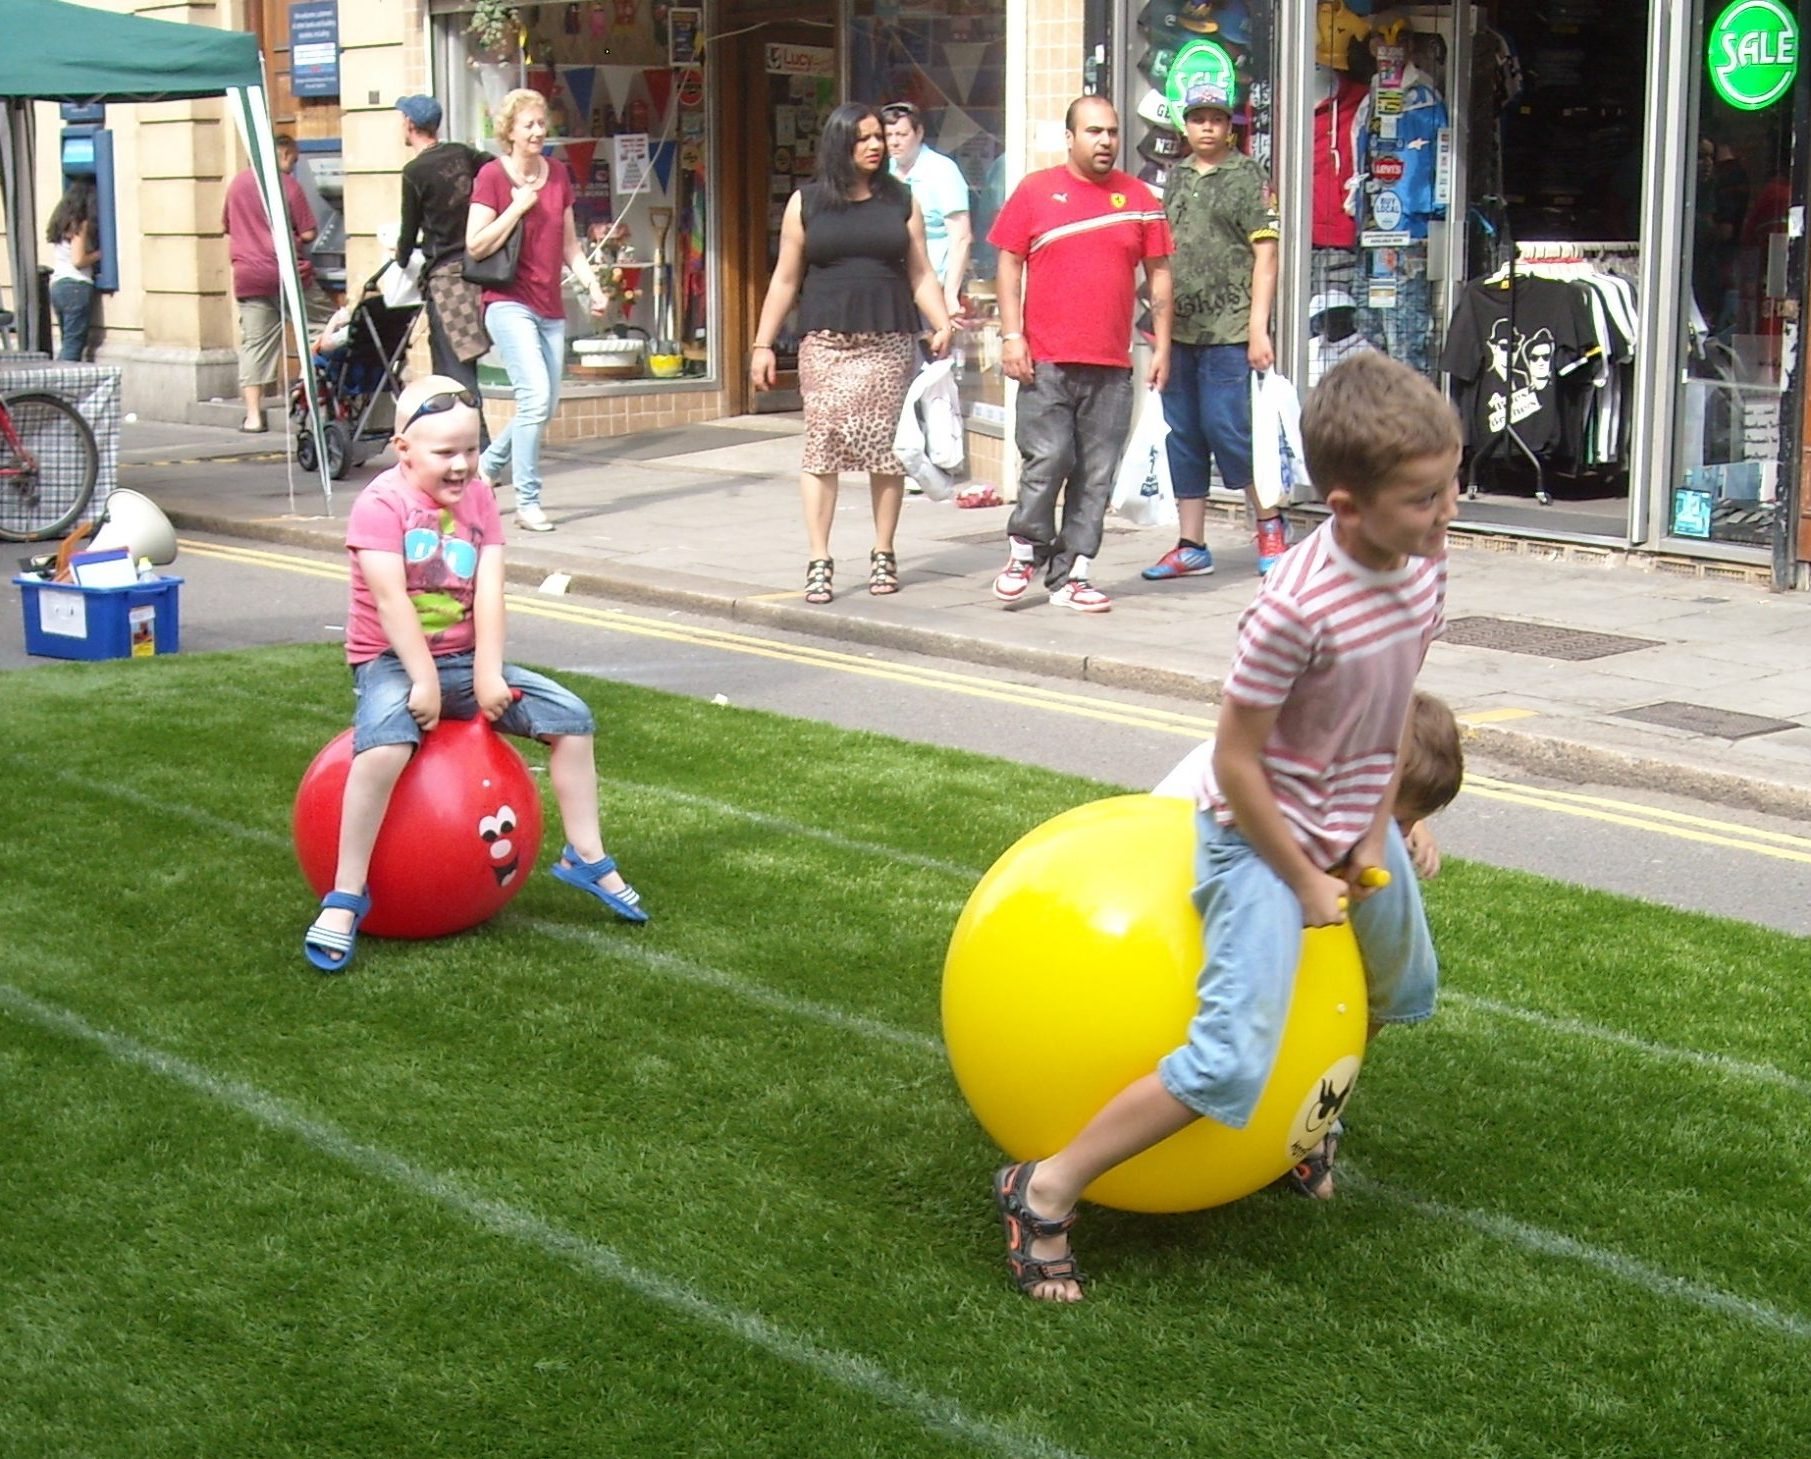 HighStreetSpaceHopperRace scaled e1627544102678 How Many Of These School Sports Day Events Did You Take Part In Growing Up?